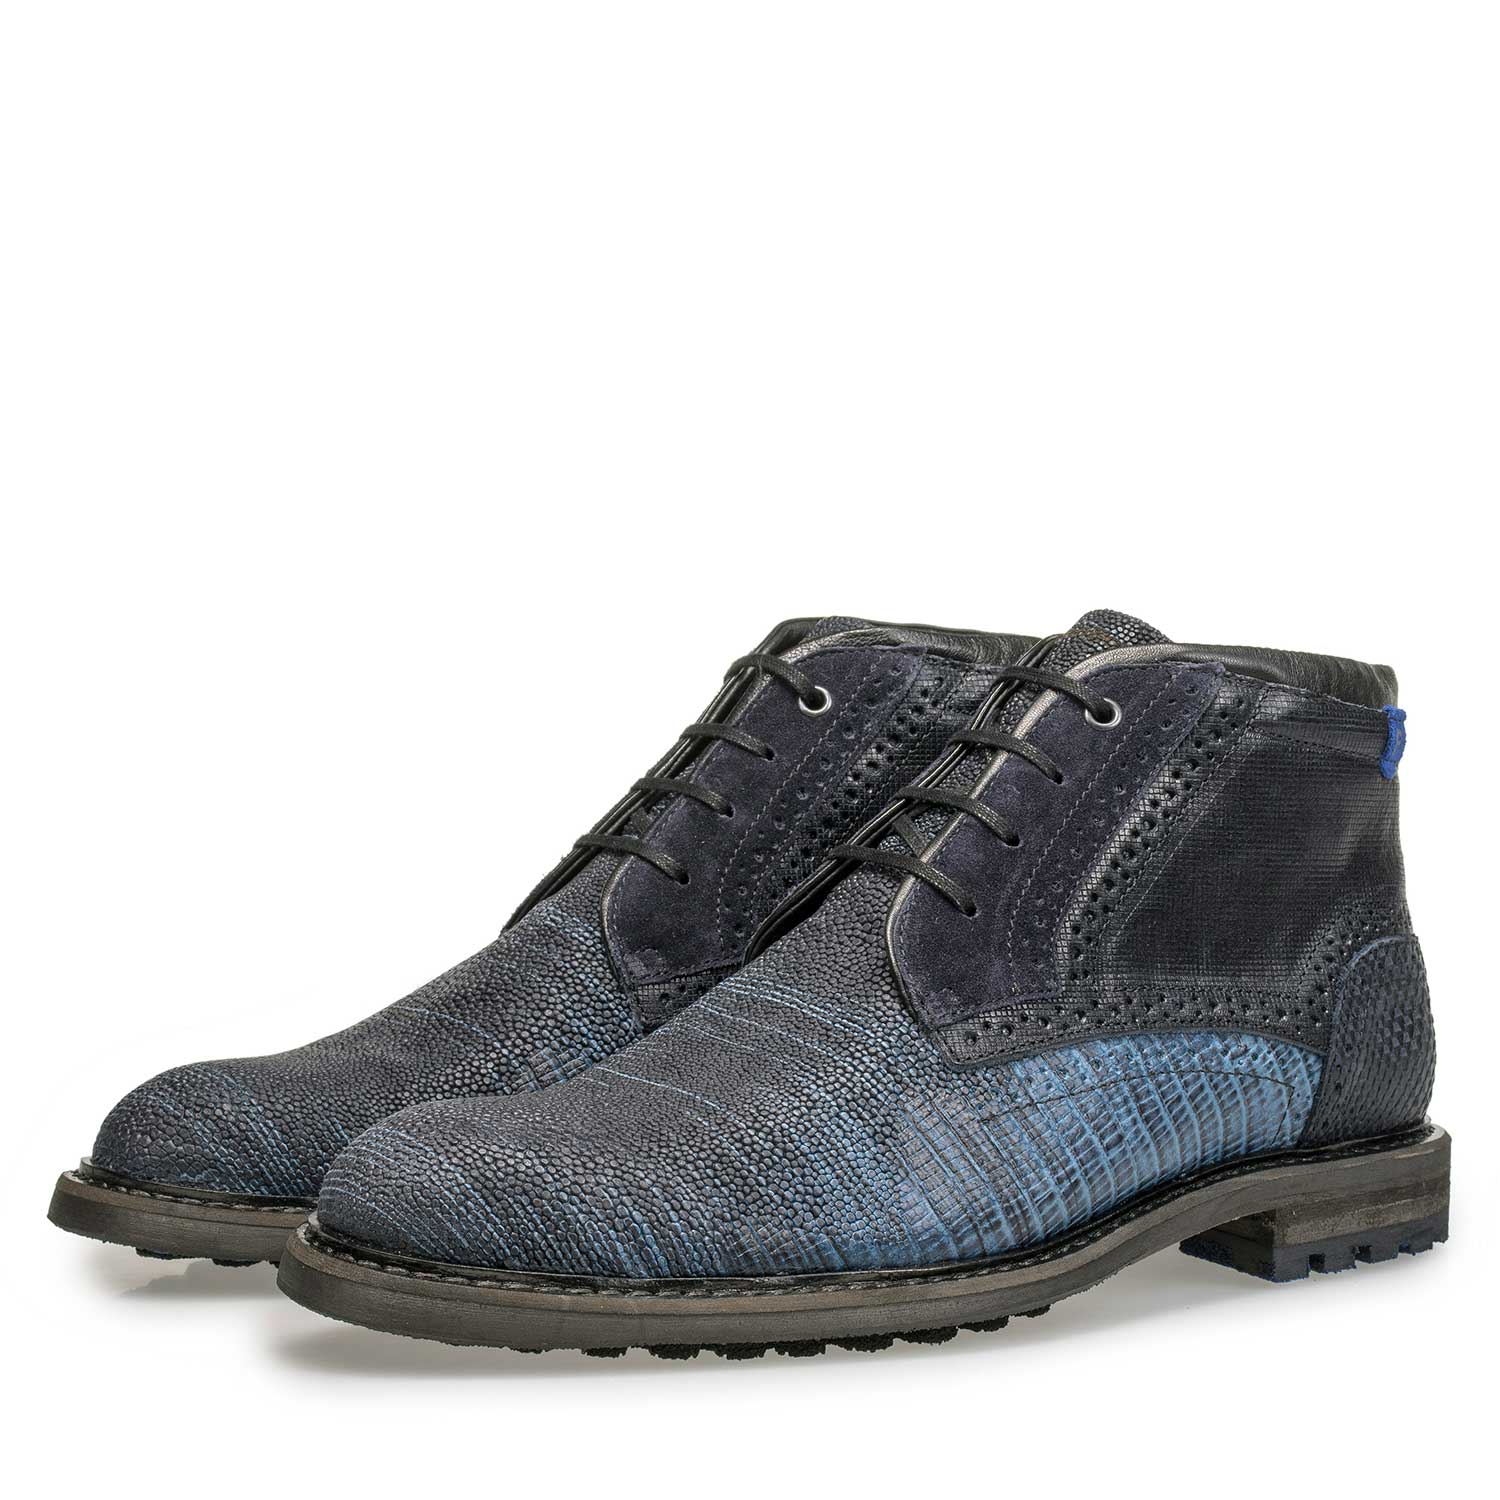 10978/10 - Blue leather lace boot with structural pattern